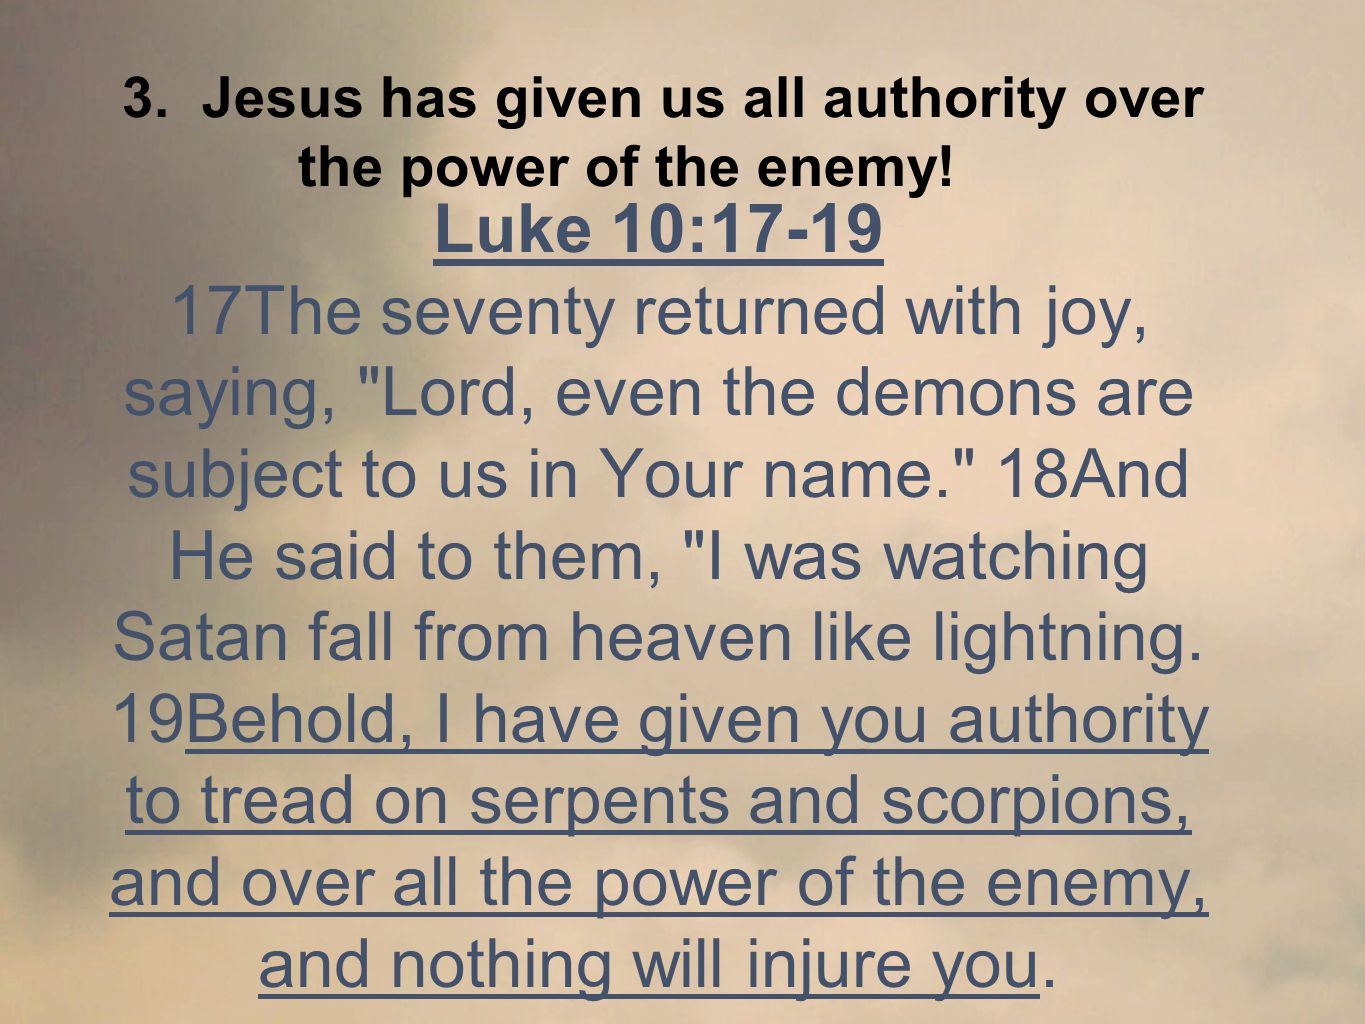 Luke 10:17-19 17The seventy returned with joy, saying, Lord, even the demons are subject to us in Your name. 18And He said to them, I was watching Satan fall from heaven like lightning.